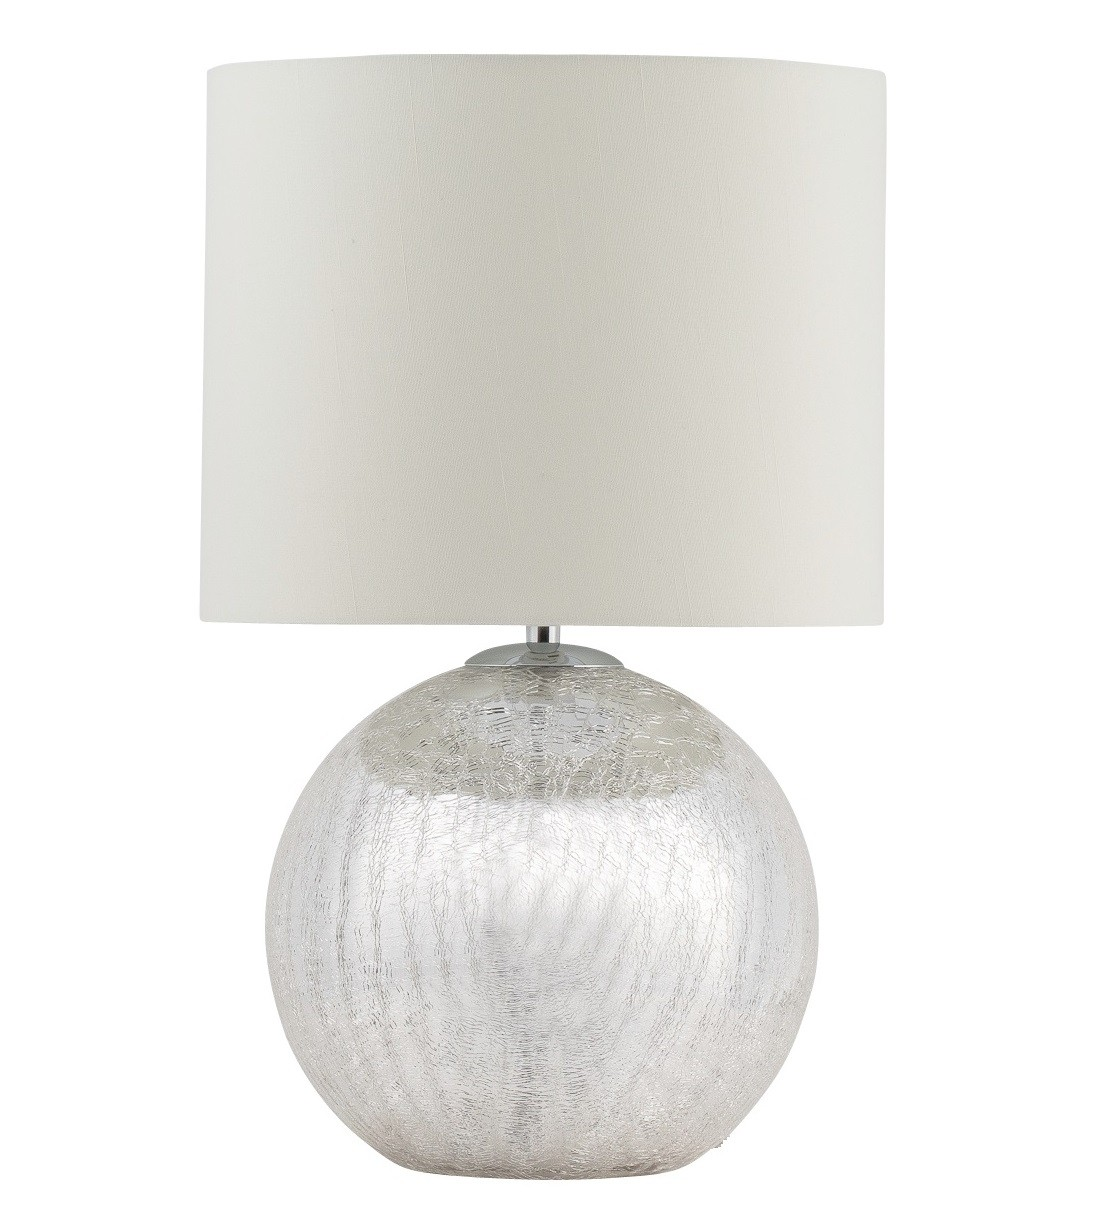 Glass Crackle Lamp Cortez Chrome Crackle Glass Table Lamp With Cream Shade